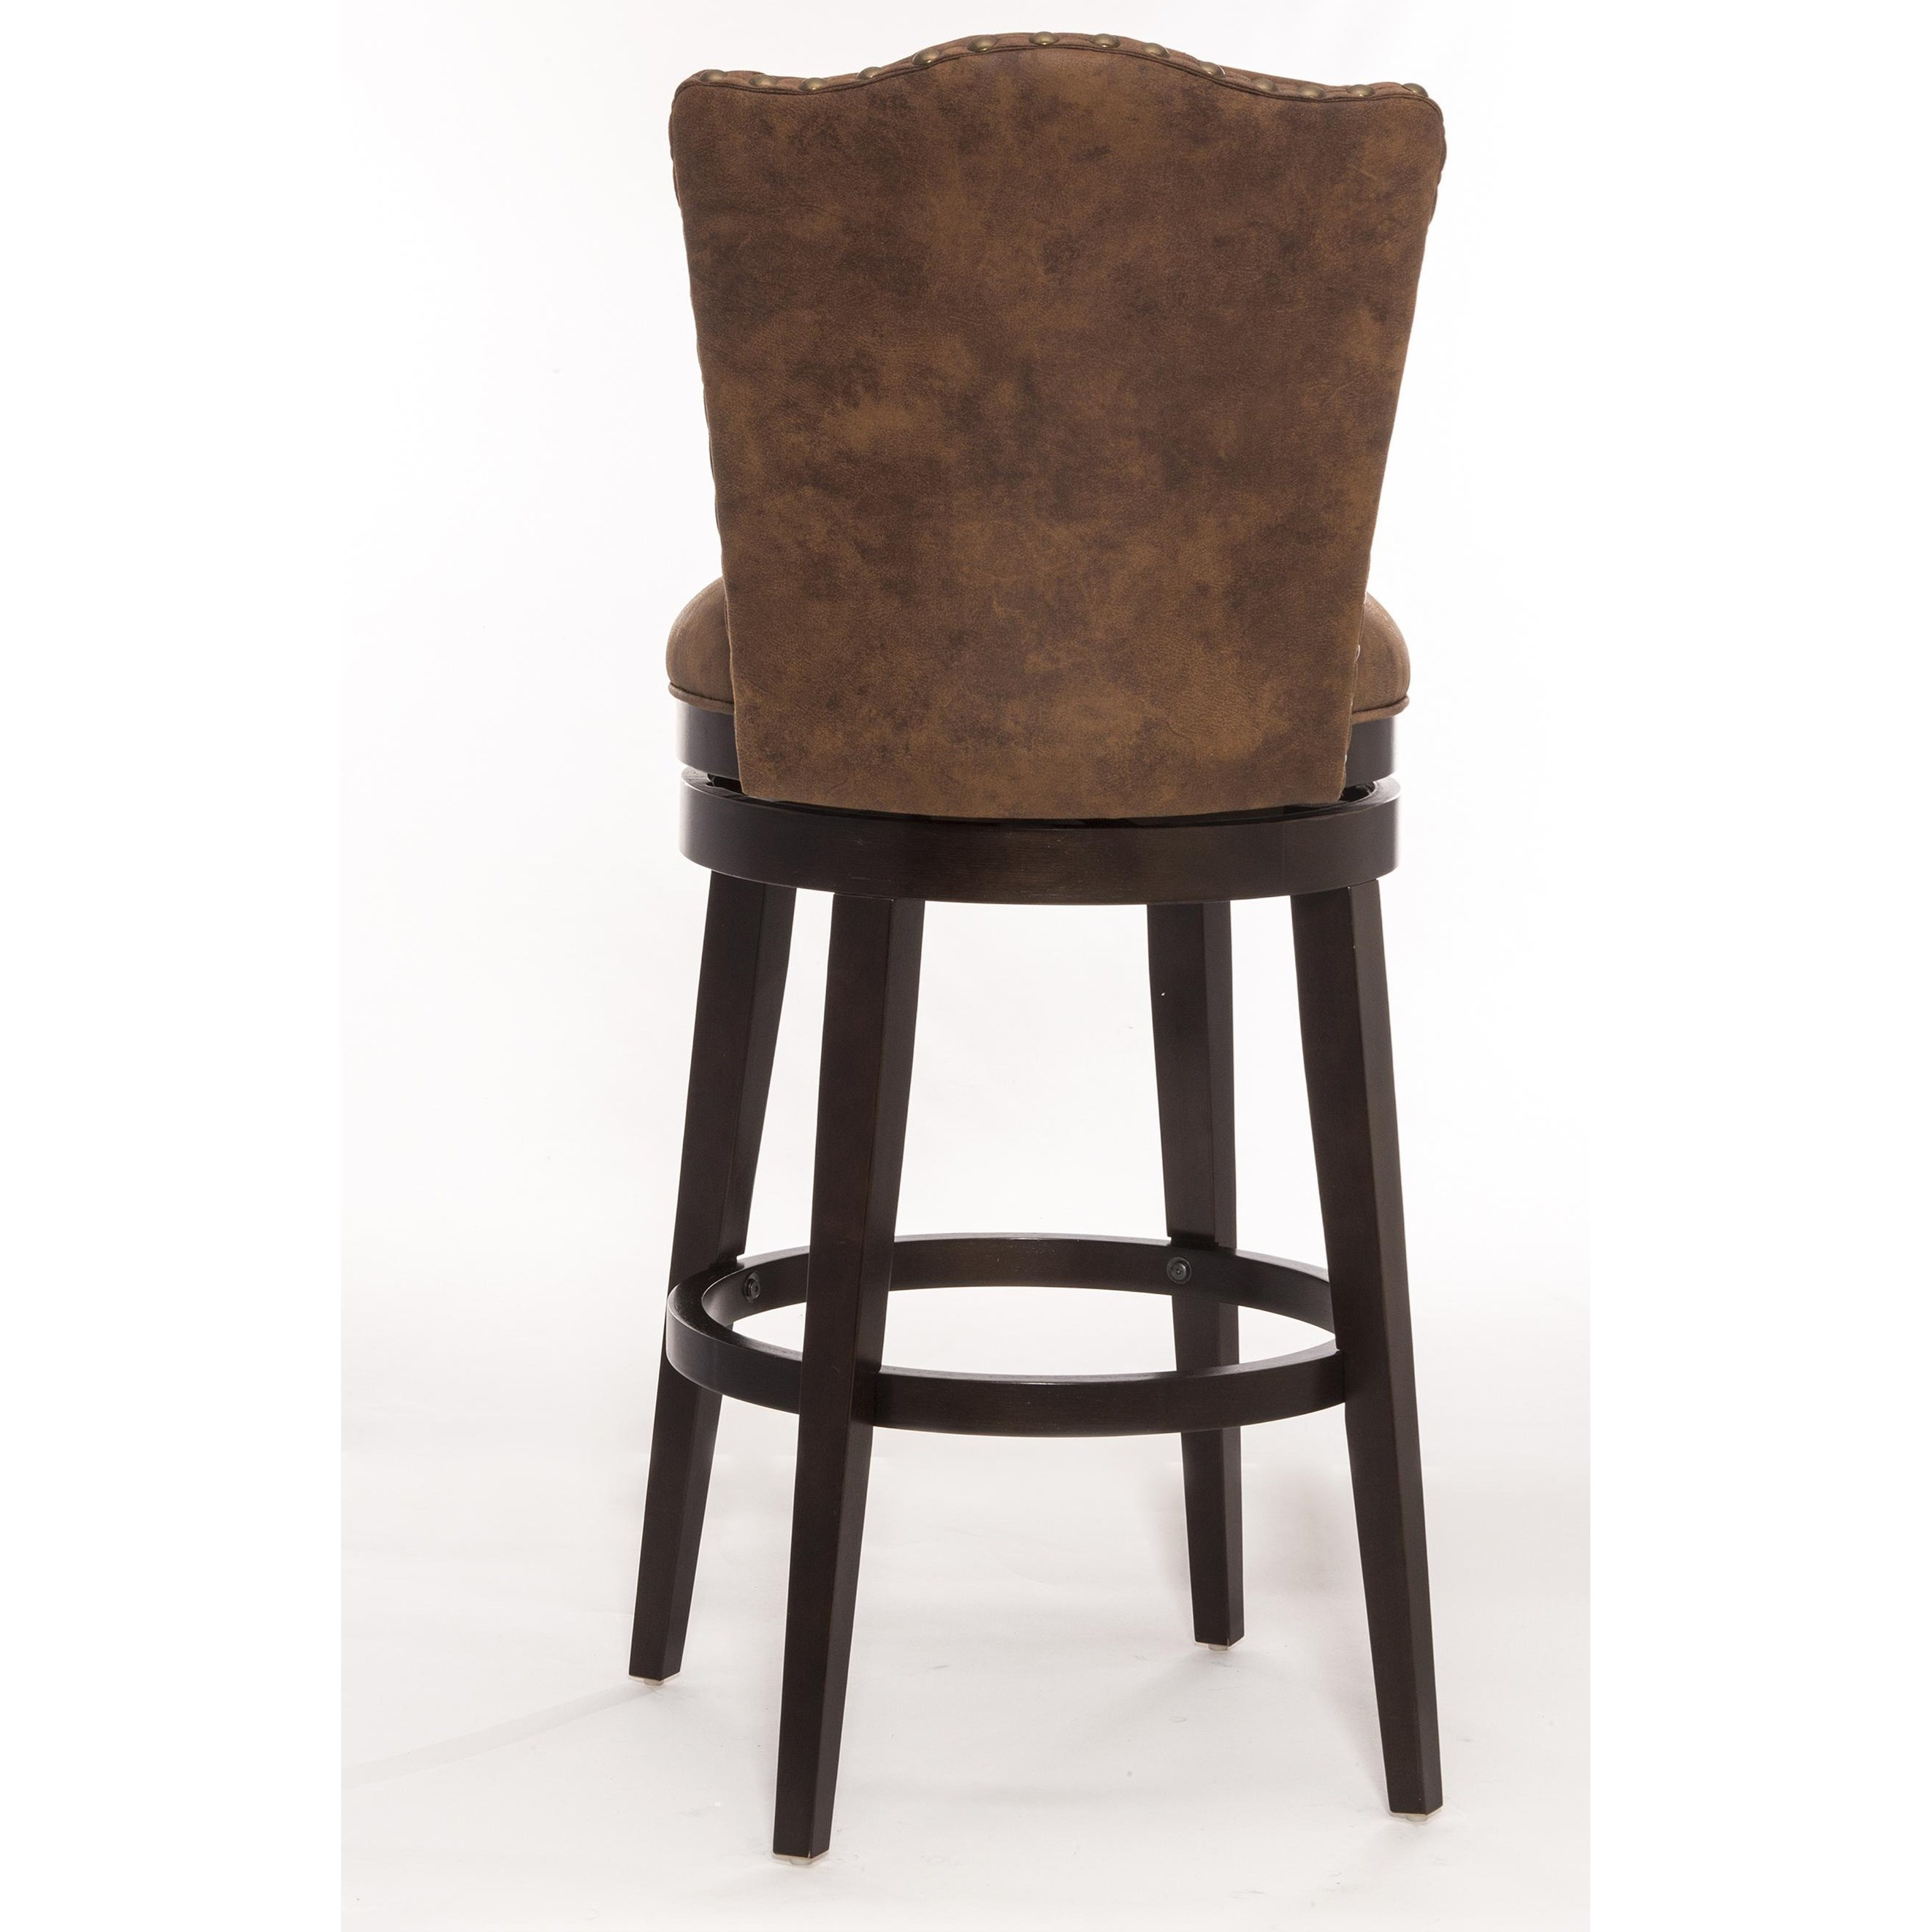 Hillsdale Wood Stools Swivel Counter Stool With